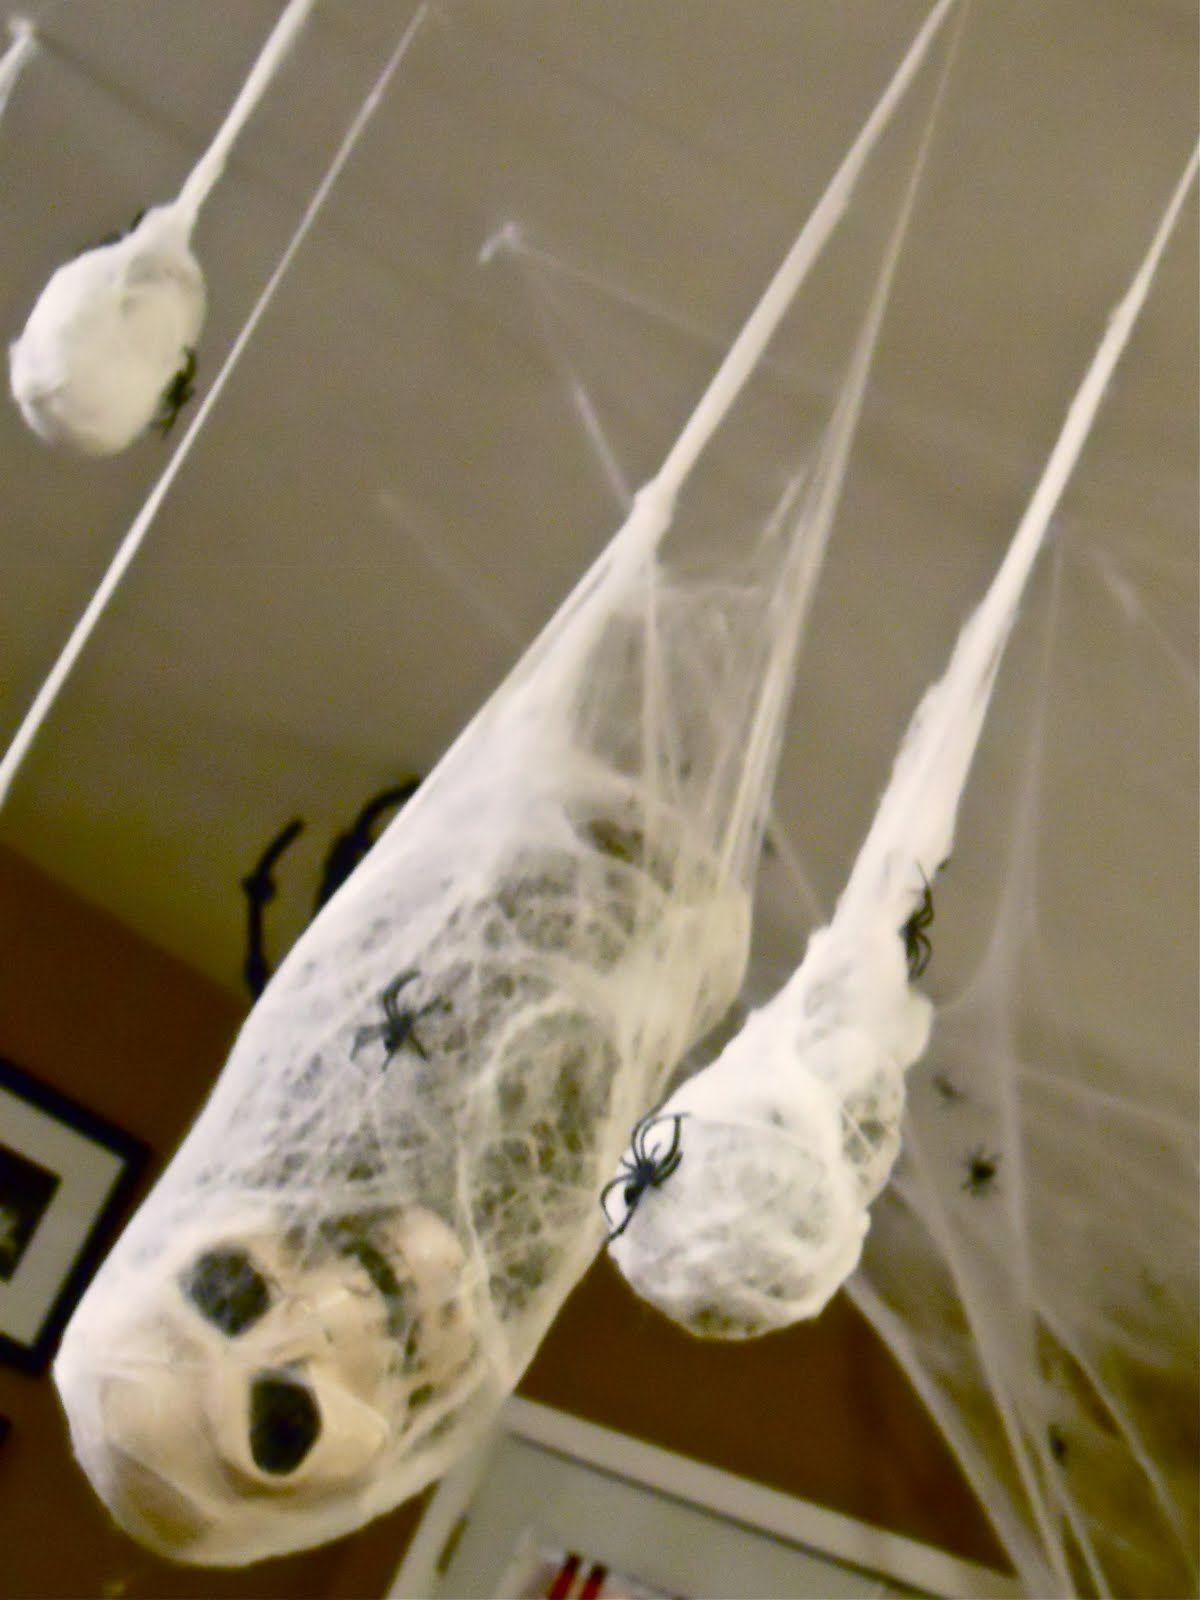 Easy homemade halloween decorations - Home Decorating Trends Homedit